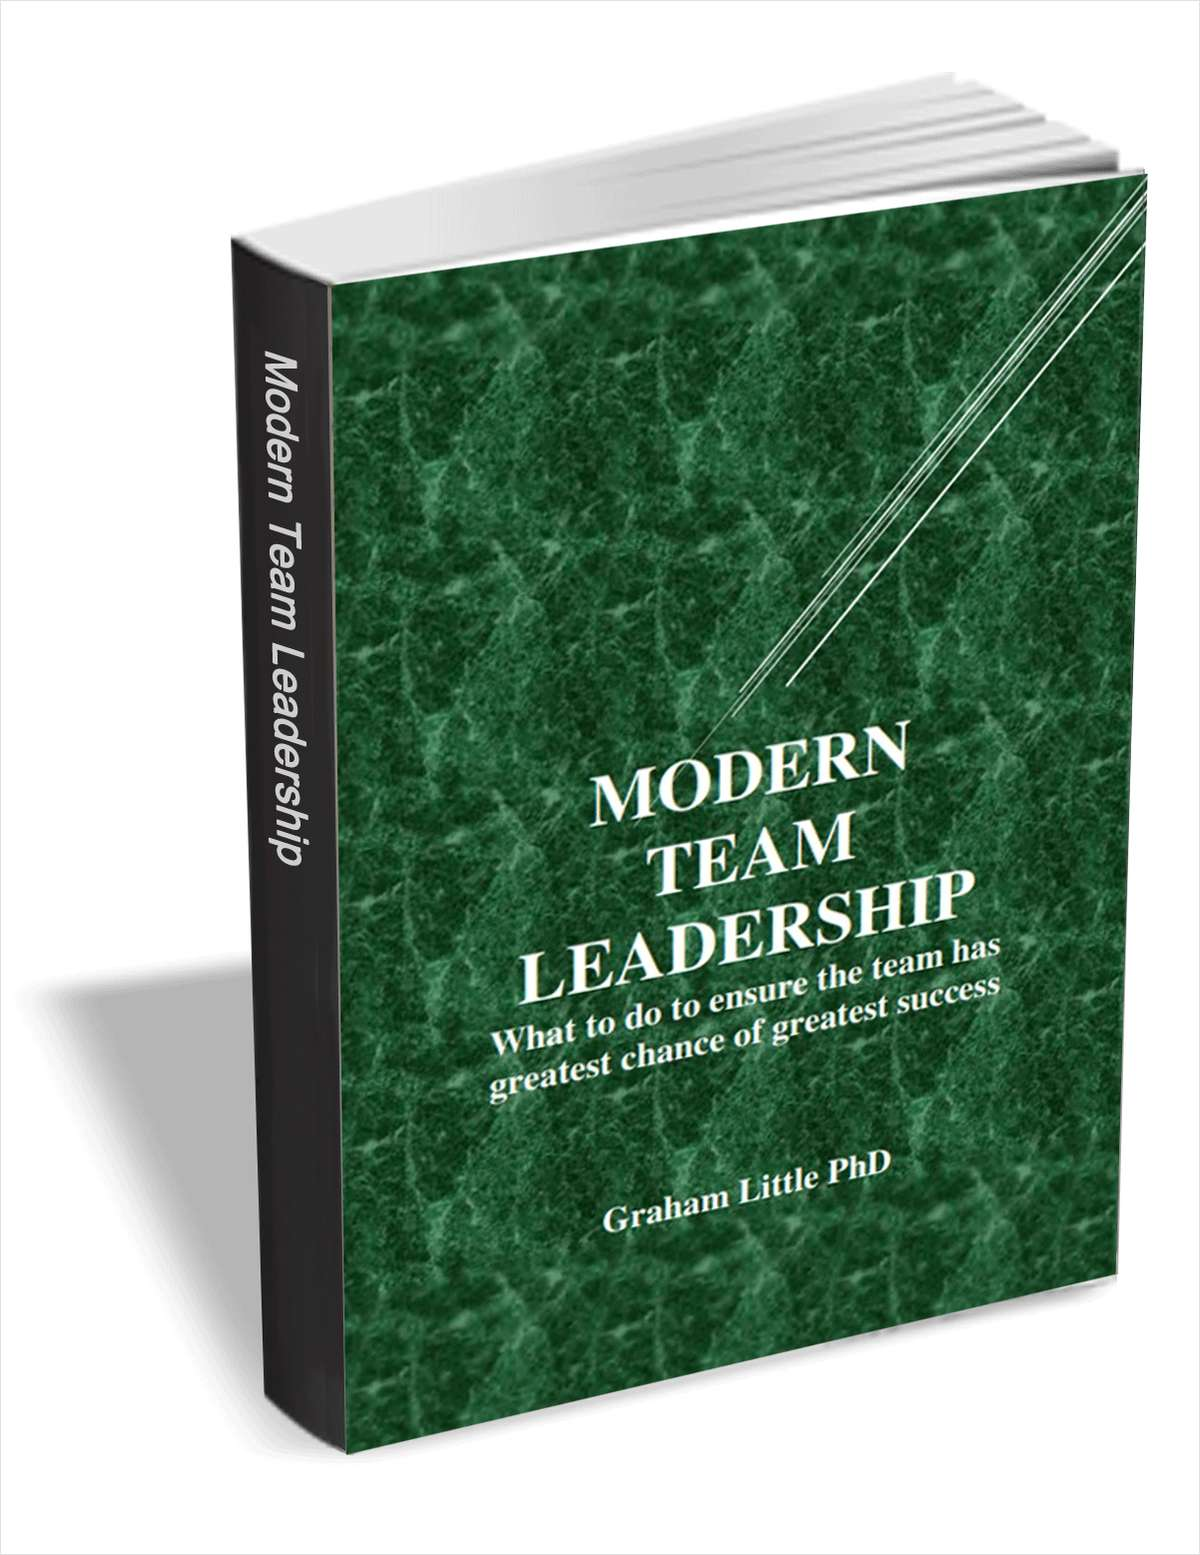 Modern Team Leadership - What to Do to Ensure the Team has Greatest Chance of Greatest Success